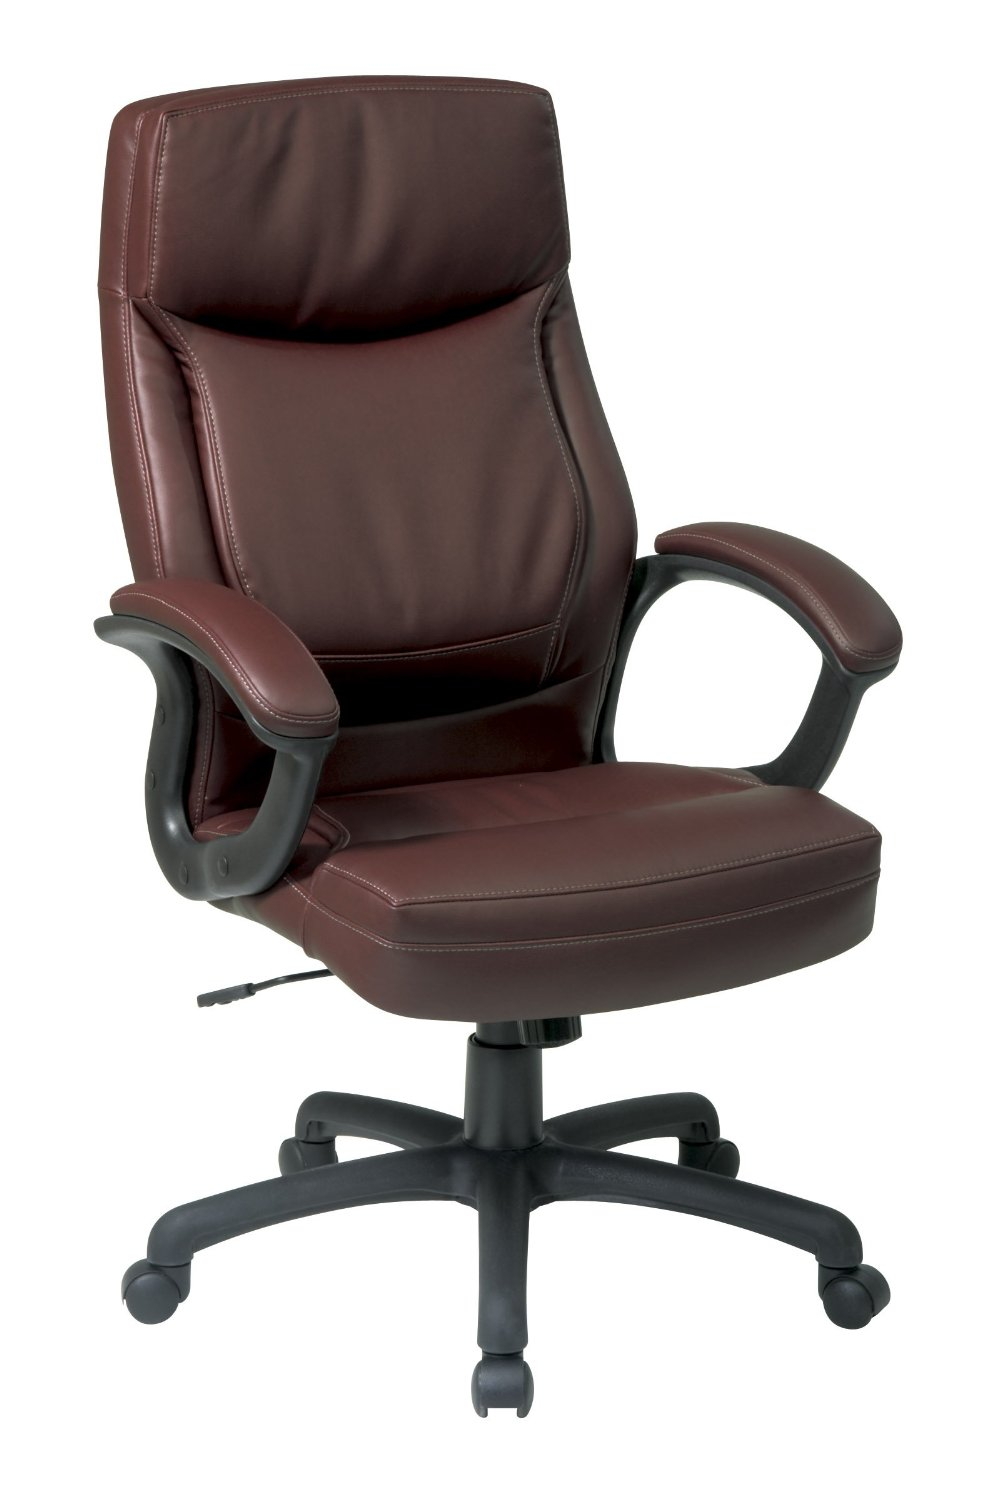 office chair - office star mocha.jpg